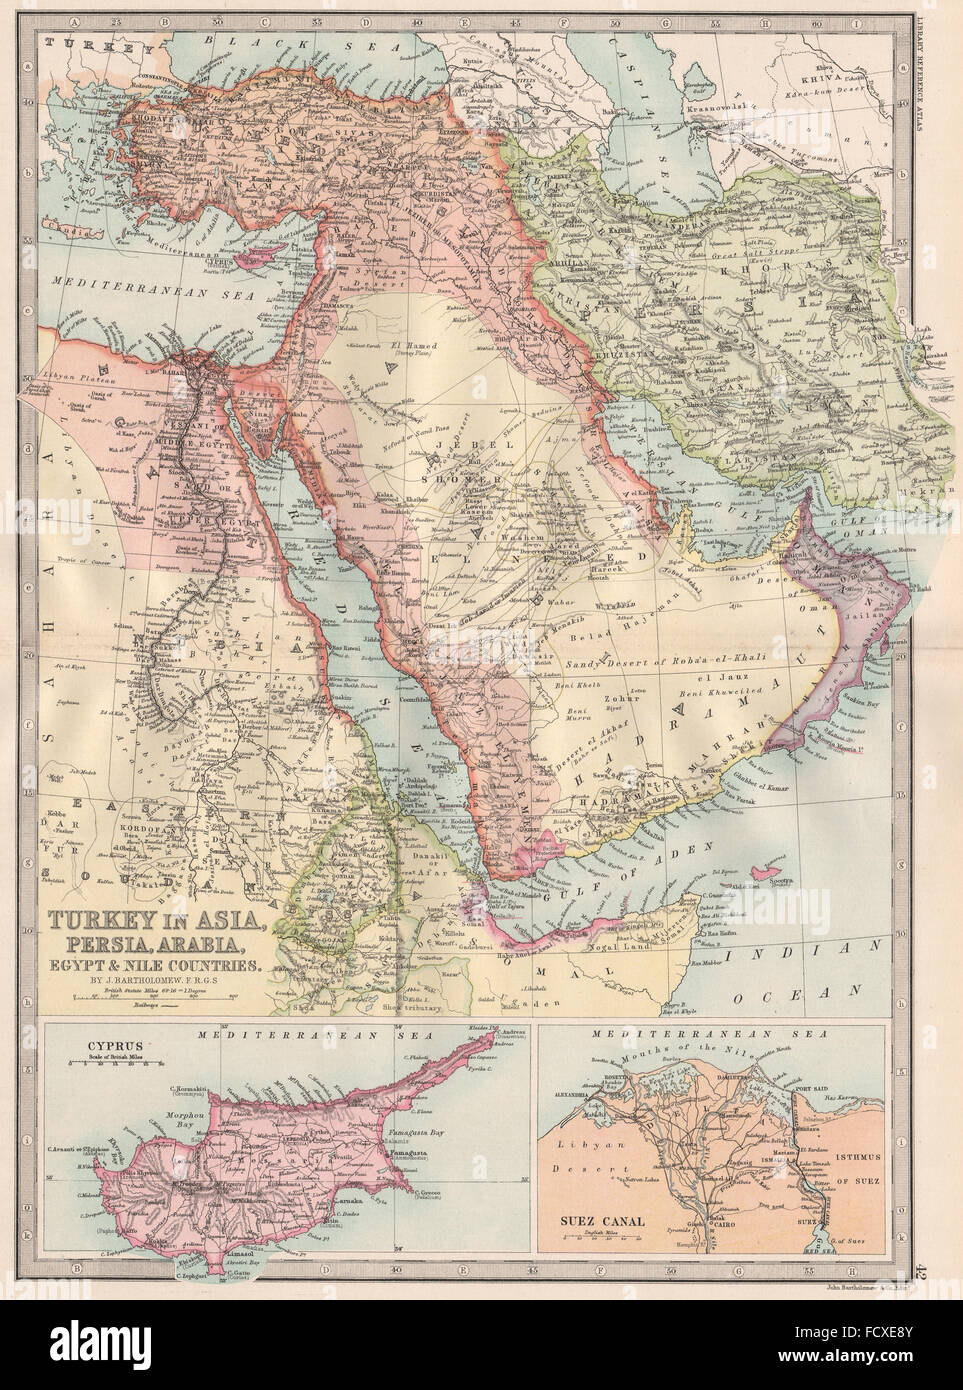 Middle east turkey asia persia iran arabia egypt cyprus suez middle east turkey asia persia iran arabia egypt cyprus suez canal 1890 map gumiabroncs Image collections